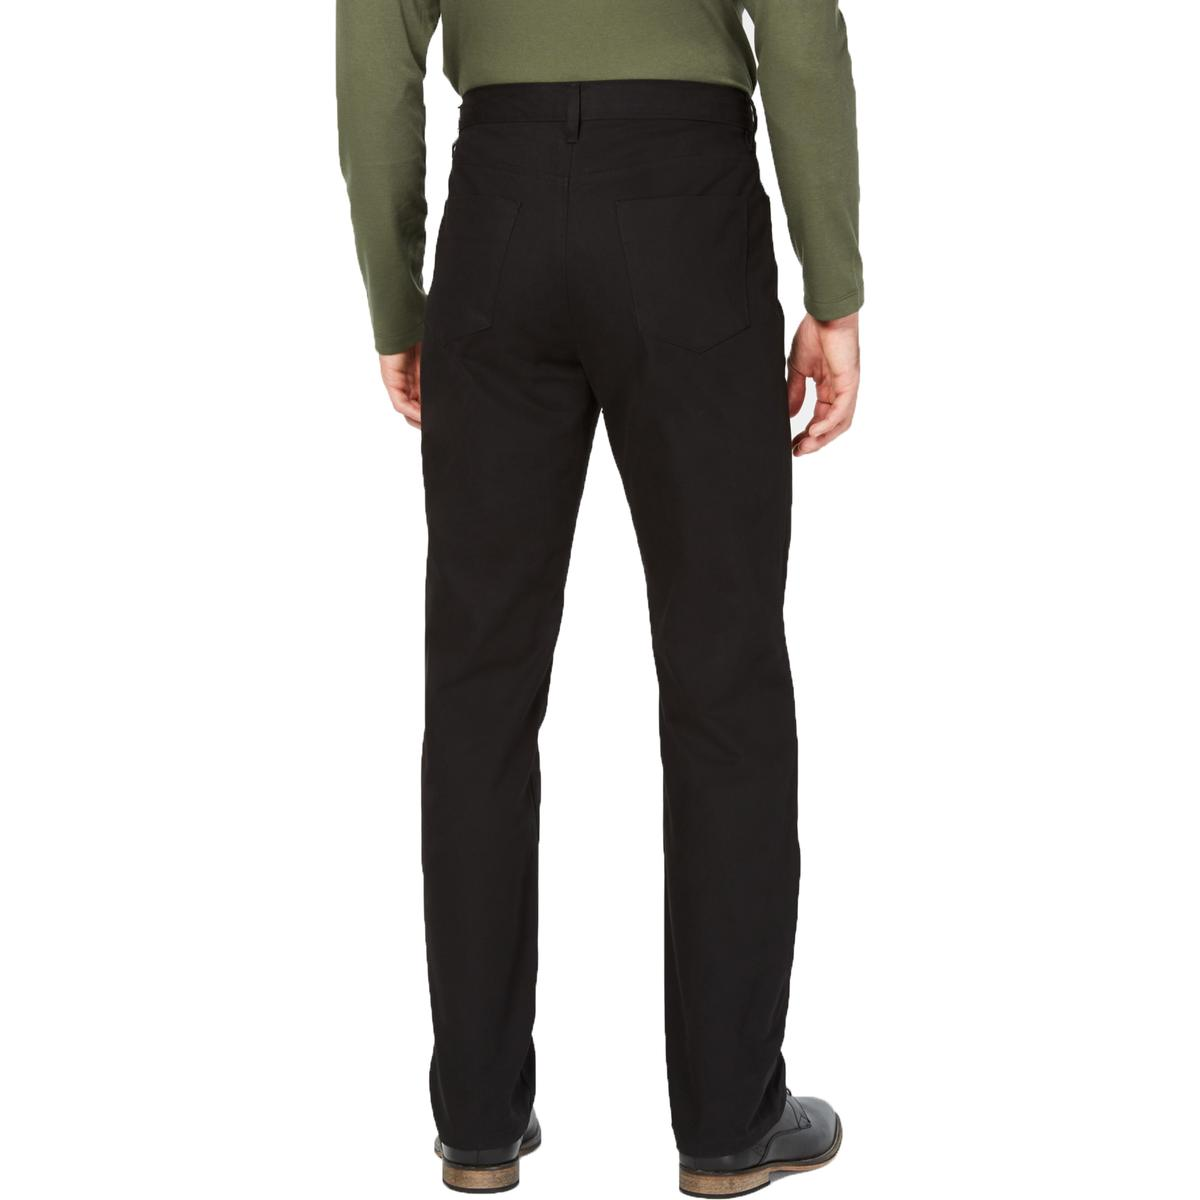 Alfani Mens Cotton Regular Fit High Rise Casual Pants BHFO 2464